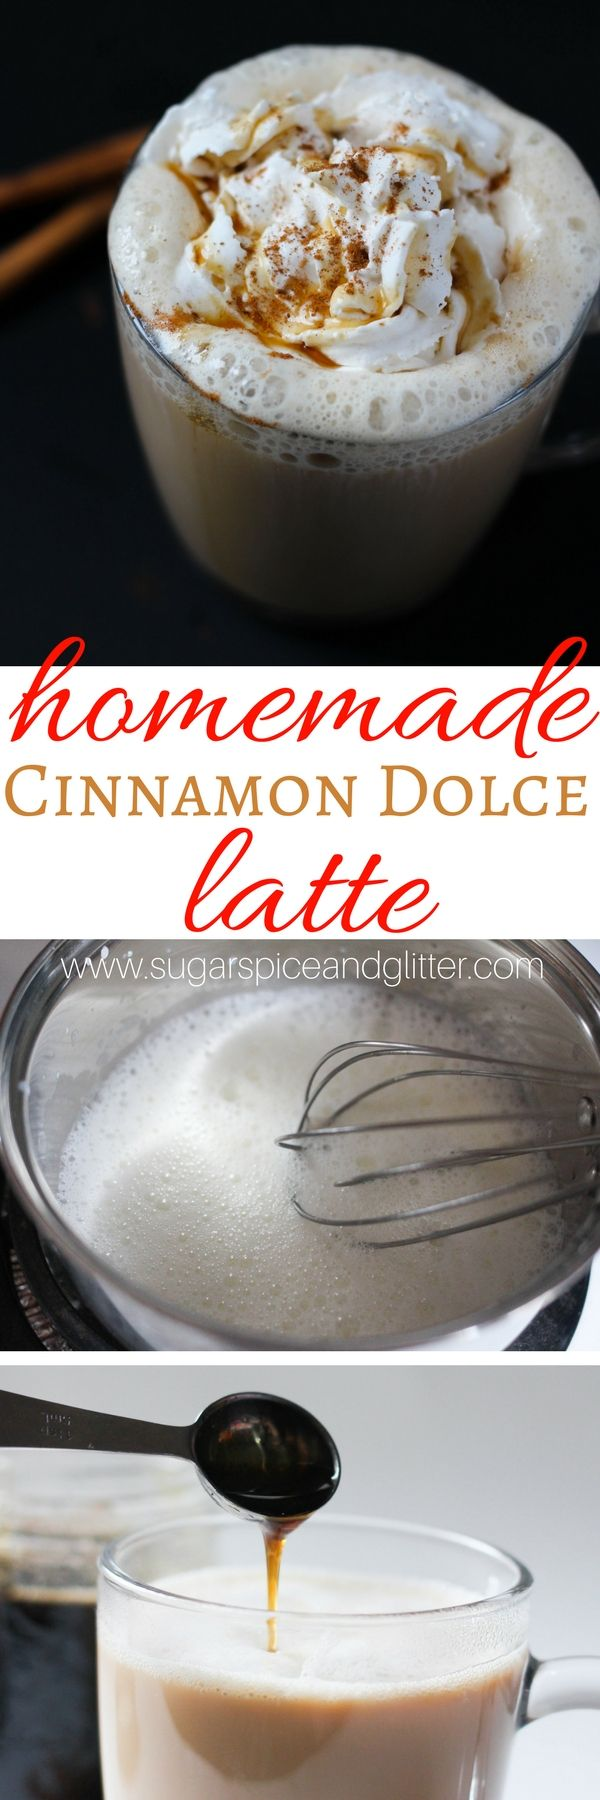 An easy homemade cinnamon dolce latte with easy homemade cinnamon coffee syrup - Starbucks flavor for a fraction of the cost